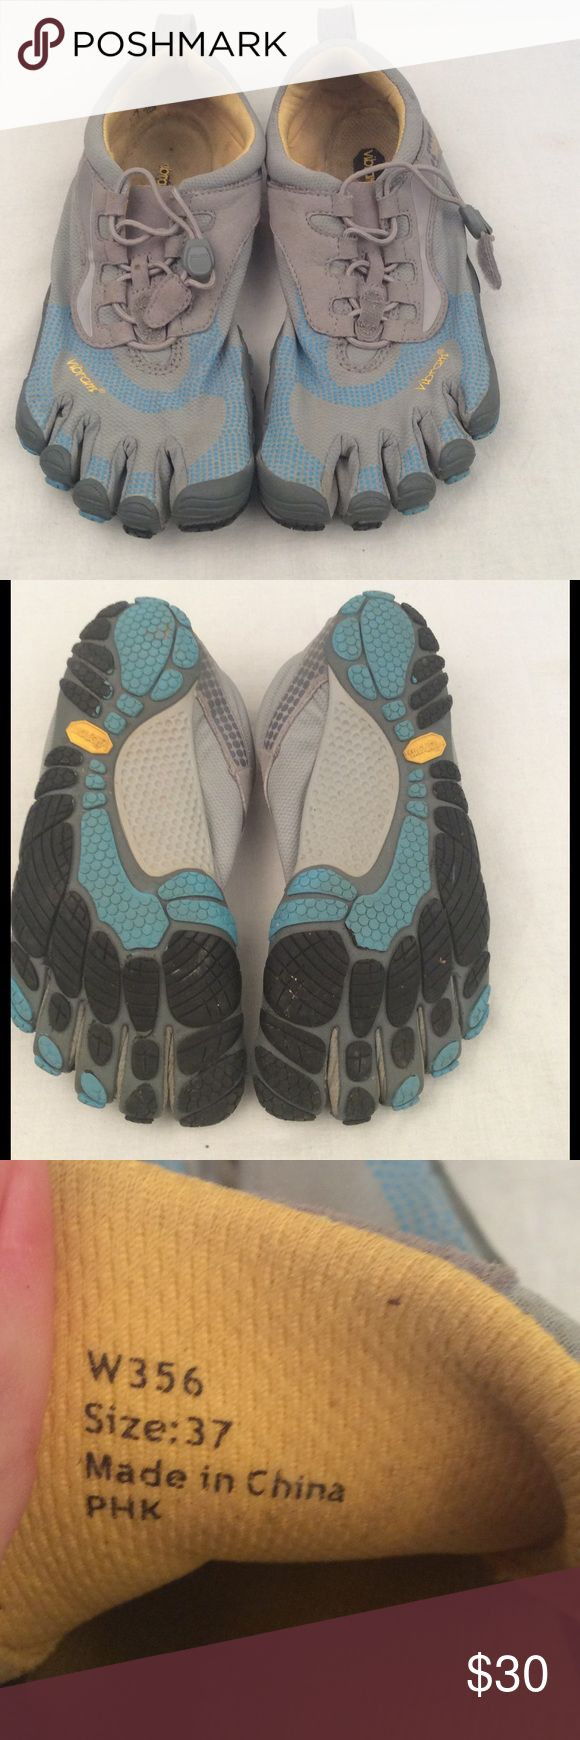 Women's Vibram Fivefinger Shoes Women's blue and gray fivefinger Vibram toe shoes, synches closed, in great condition, comes from a smoke free home. ✅Reasonable offers considered  ✅Bundle for a discount & save on shipping  ✅Same/next day shipping Vibram Shoes Athletic Shoes